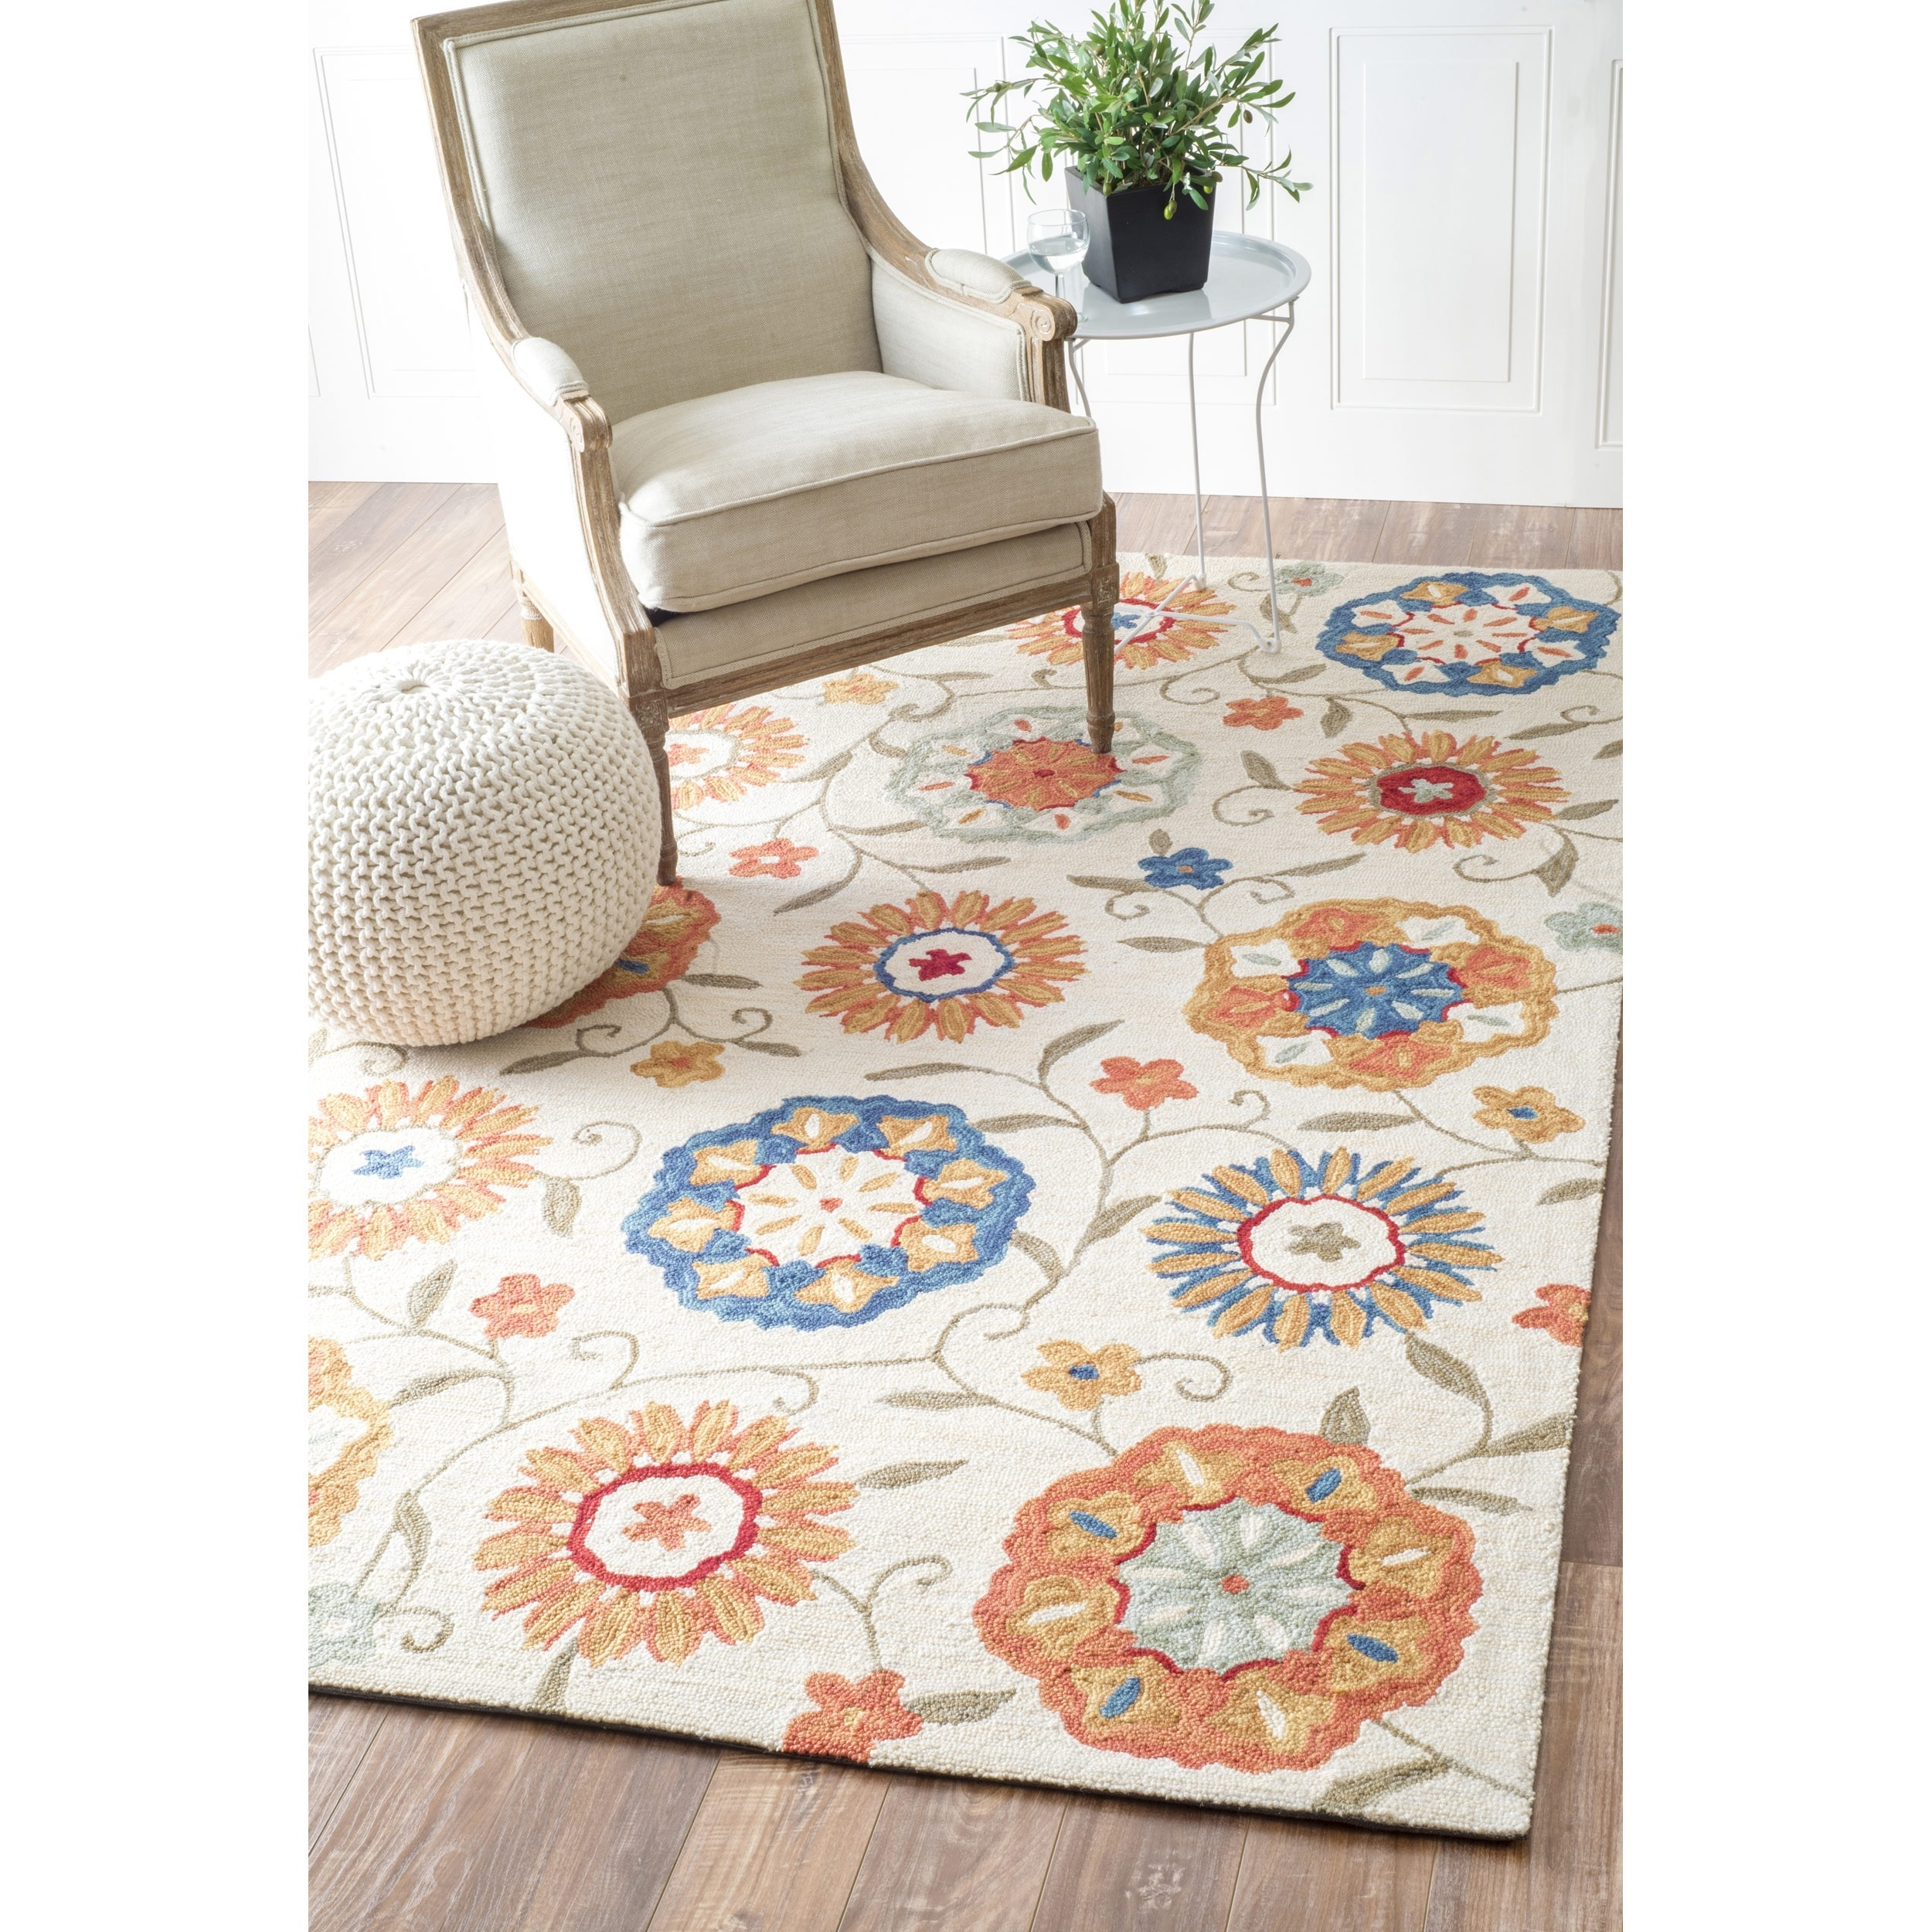 Nuloom Handmade Floral Ivory Rug (6 X 9) (MultiPattern FloralTip We recommend the use of a non skid pad to keep the rug in place on smooth surfaces.All rug sizes are approximate. Due to the difference of monitor colors, some rug colors may vary slightly